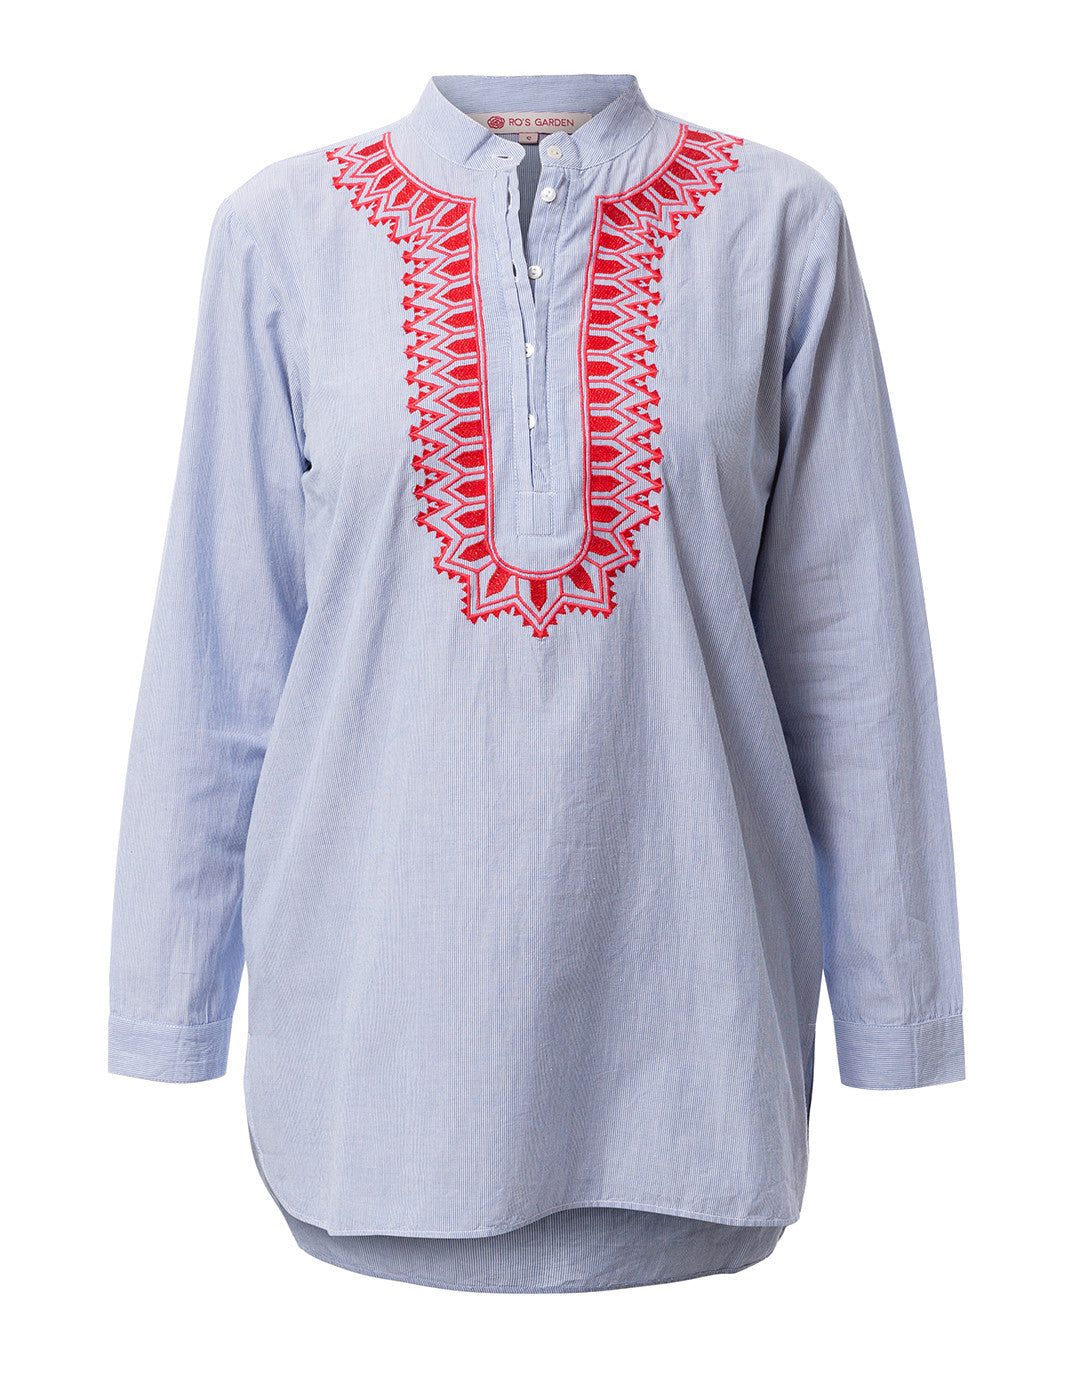 Silvie Embroidered Top